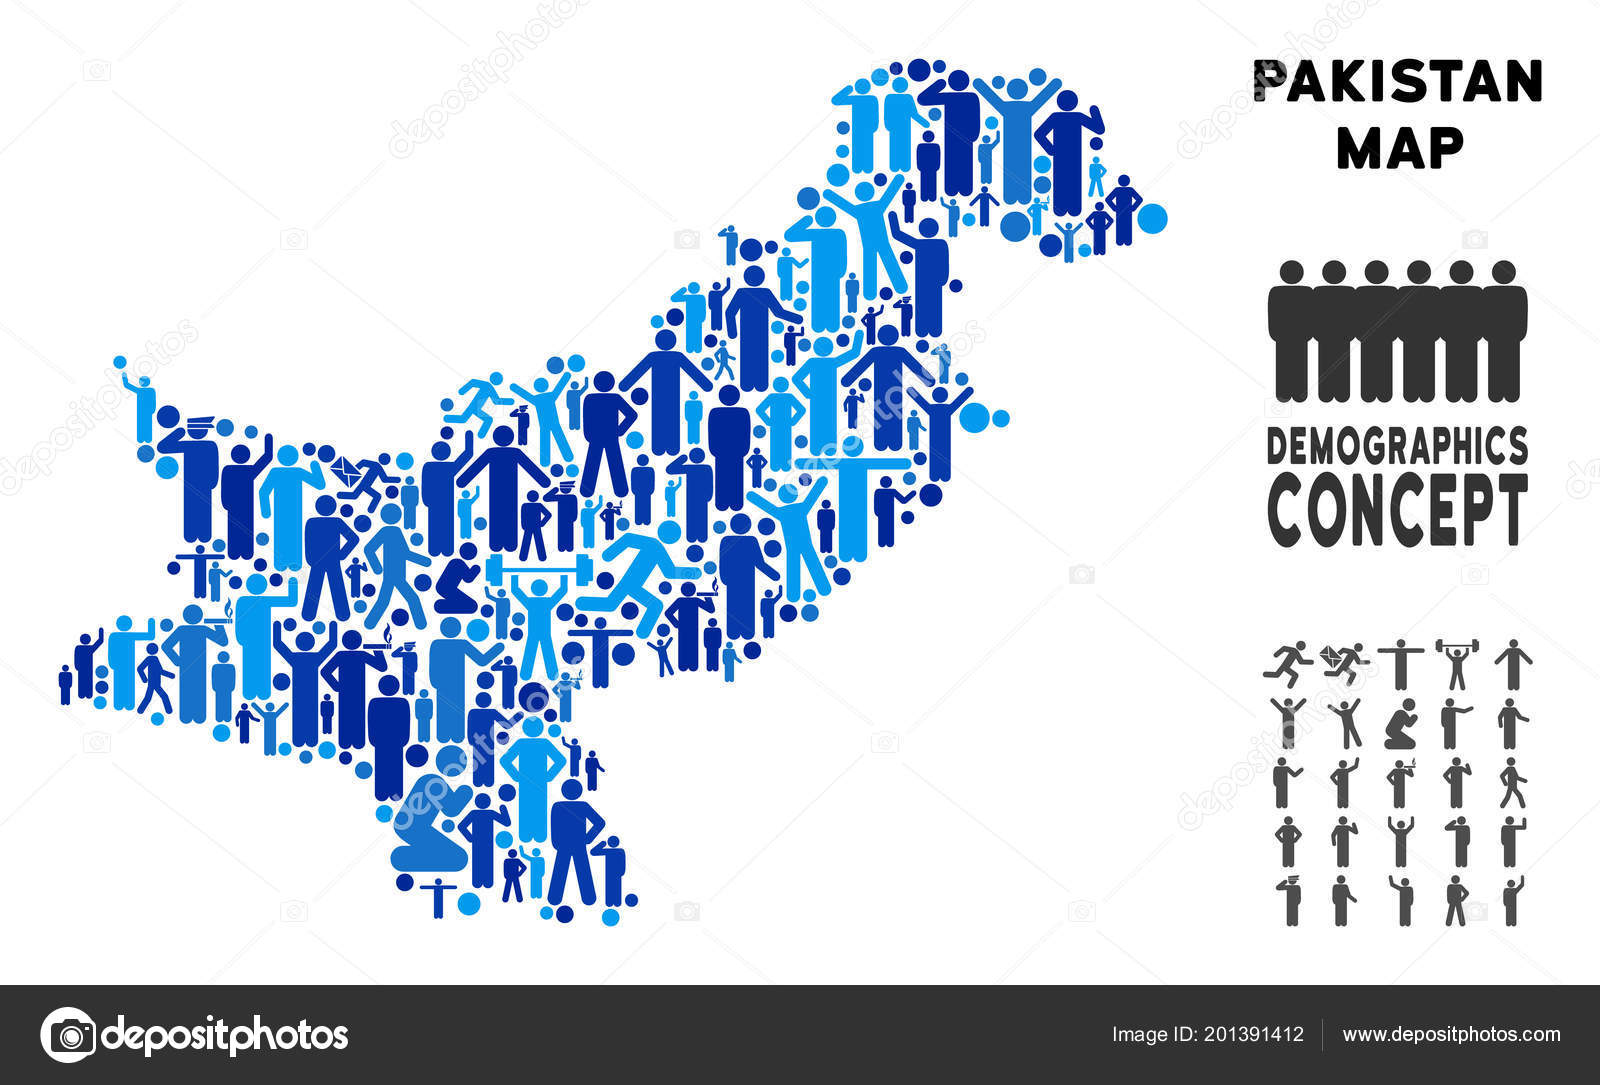 demographic trends of pakistan Note: provisional results of pakistan's 2017 national census estimate the country's total population to be 207,774,000 age structure 0-14 years: 3136% (male 33,005,623/female 31,265,463.